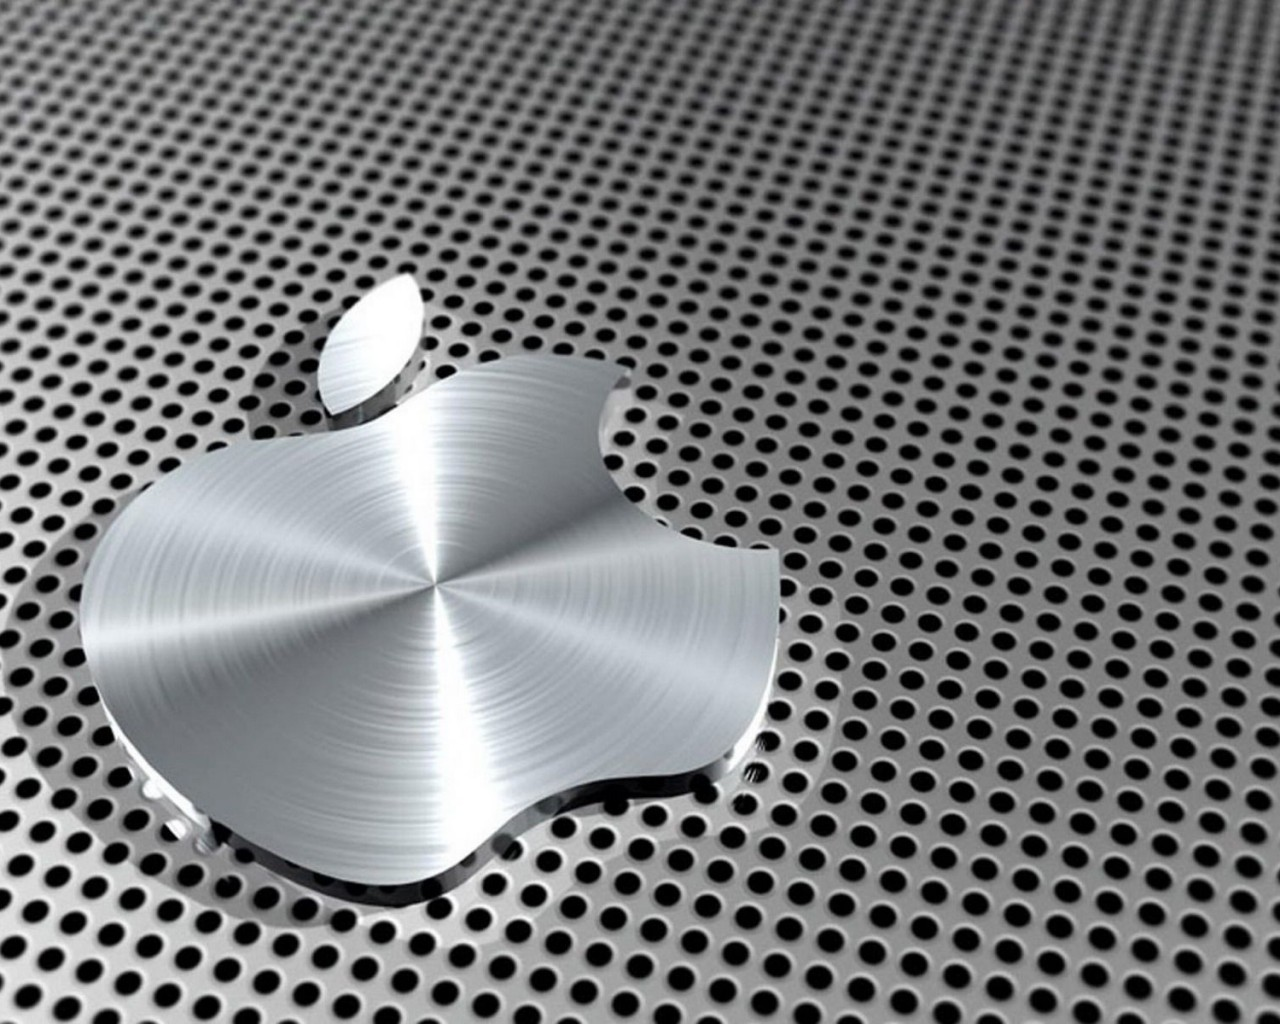 Epl-Aluminum-Apple-1024x1280